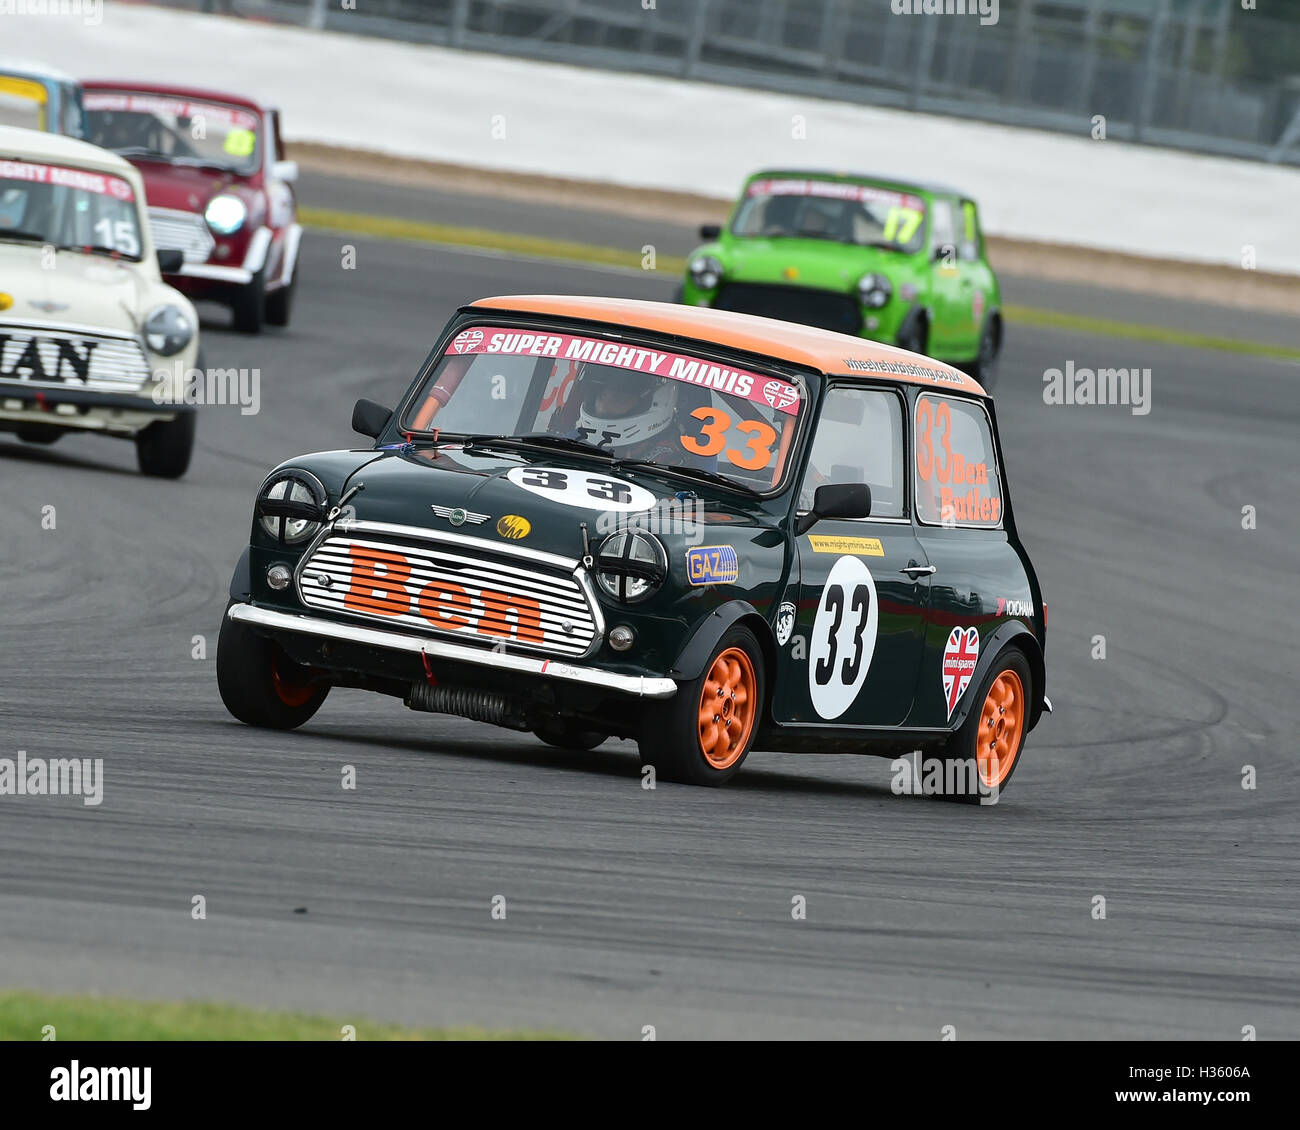 Ben Butler, Super Mighty Mini, 1293, Mighty Mini Championship, Saturday, Silverstone, Silverstone truck festival, - Stock Image